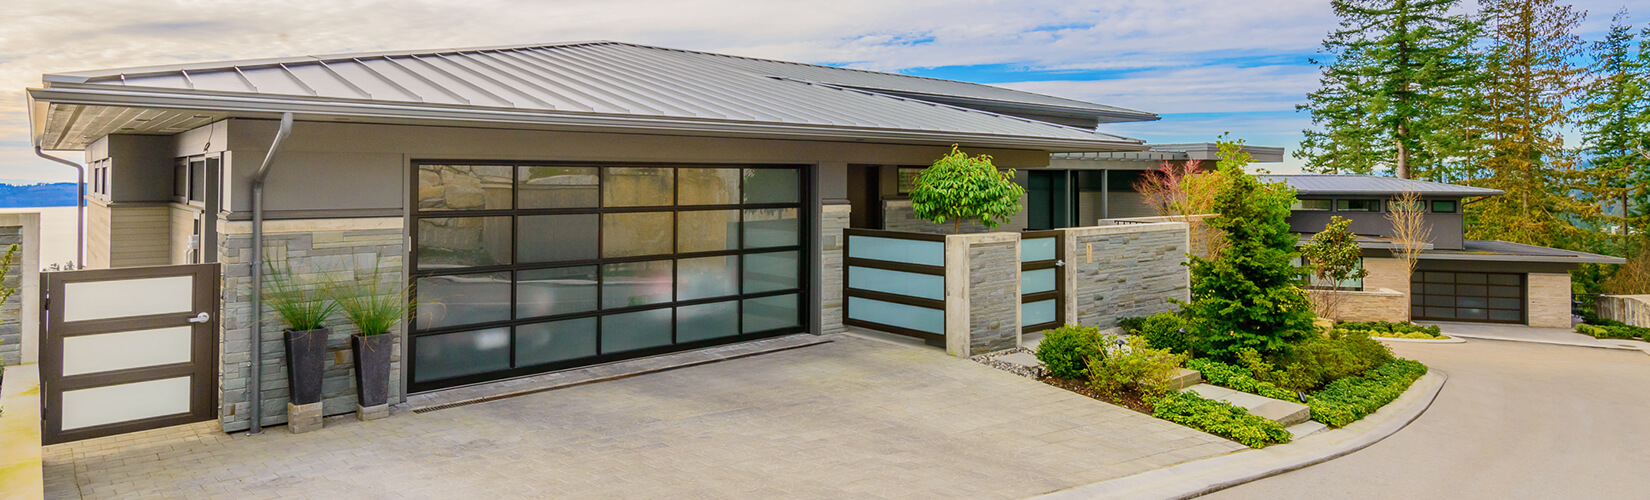 Grey modern home with glass garage door